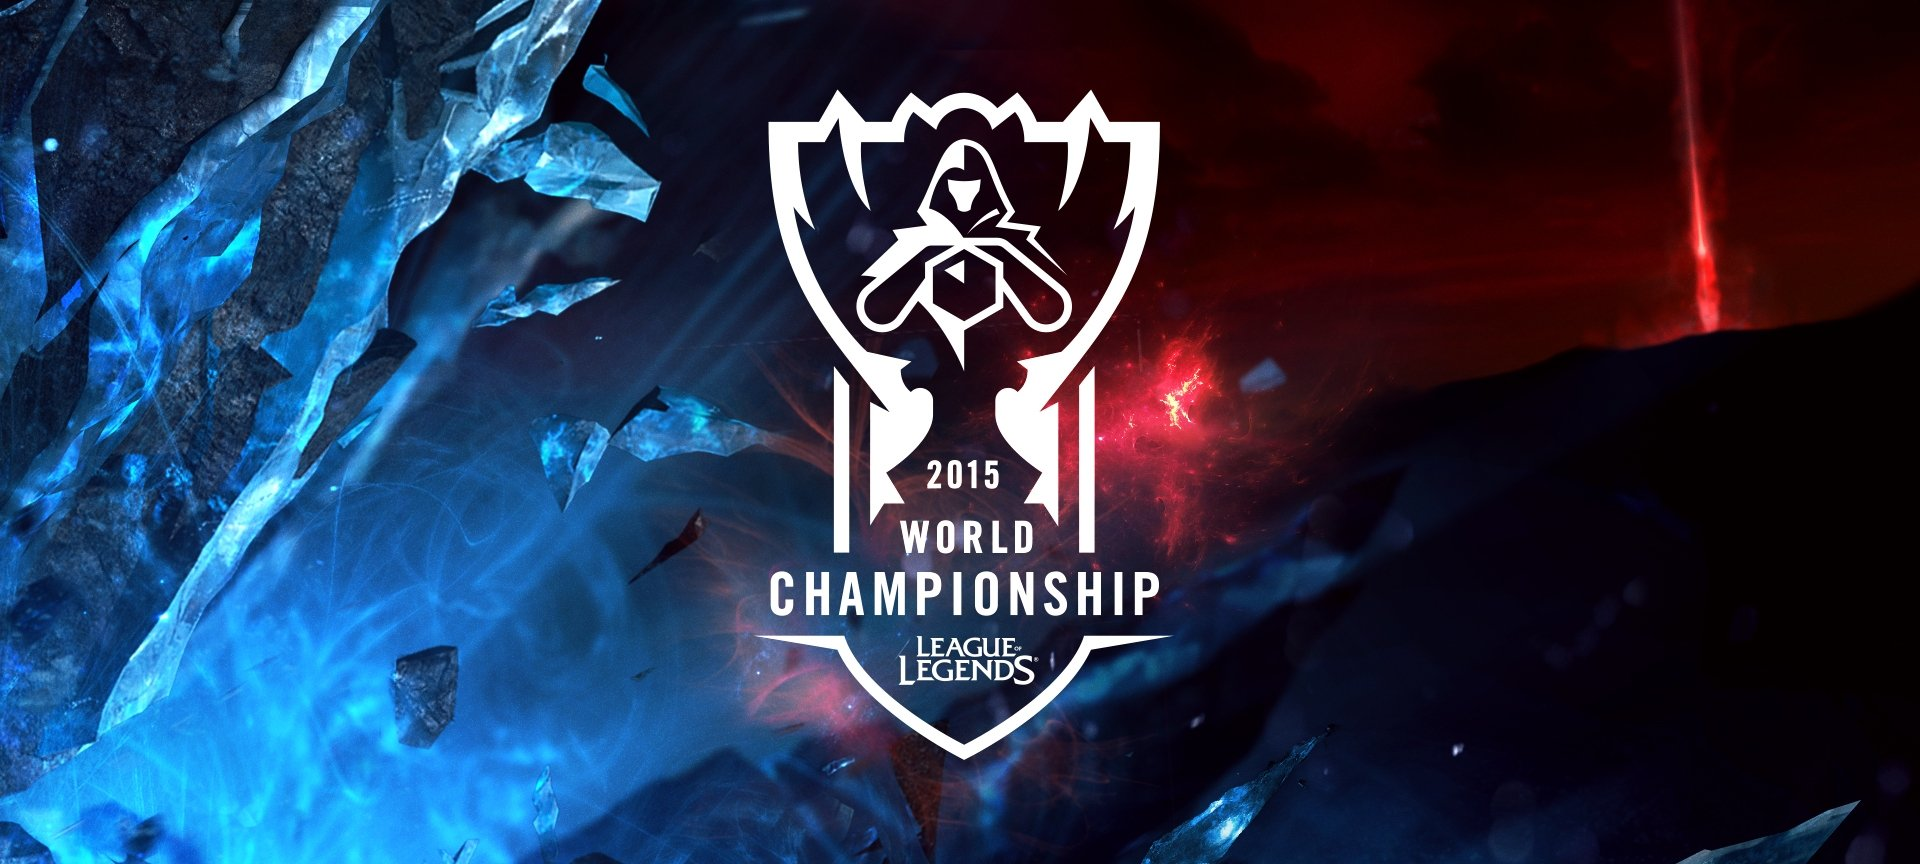 League of Legends - 2015 World Championship 3